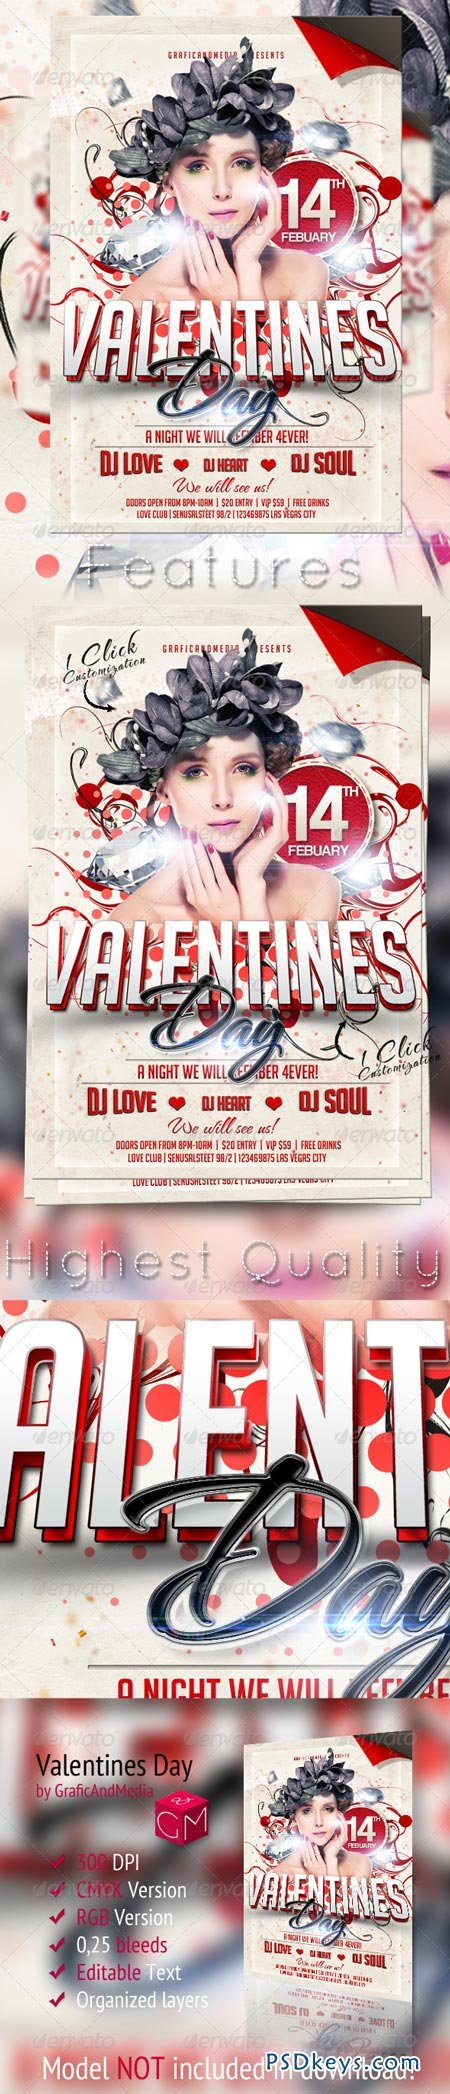 Valentines Day Flyer Template 3731131